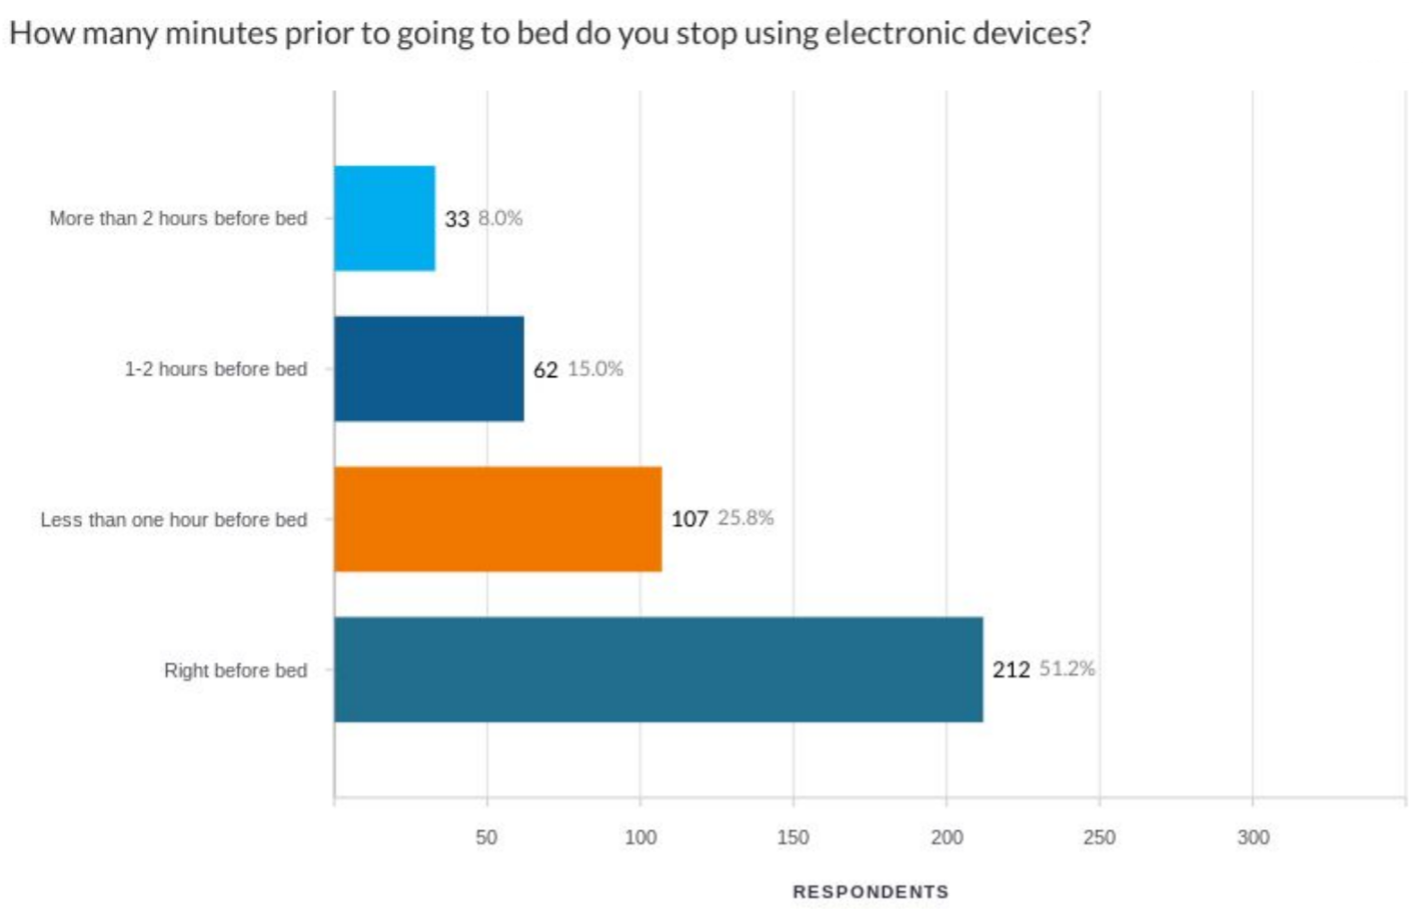 How Many People Use Electronic Devices Before Bed Survey Answers